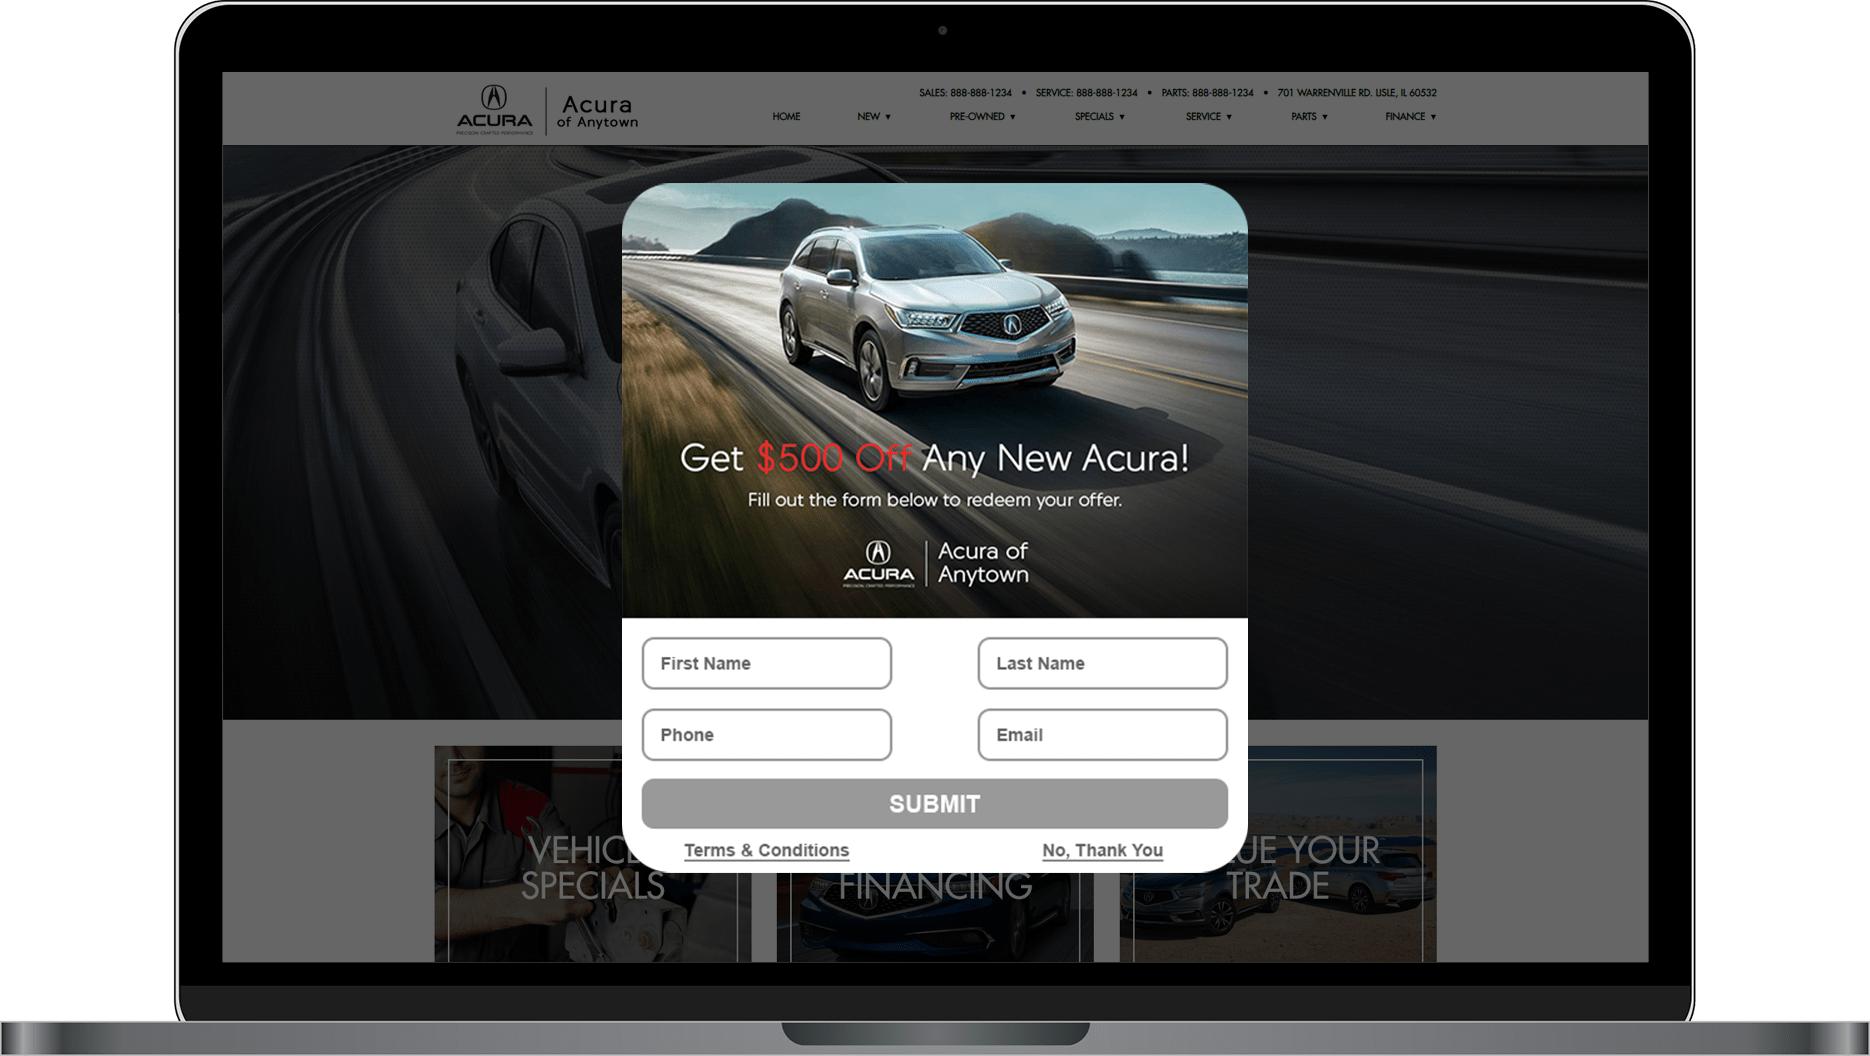 DriveCentive offer screen for Acura website